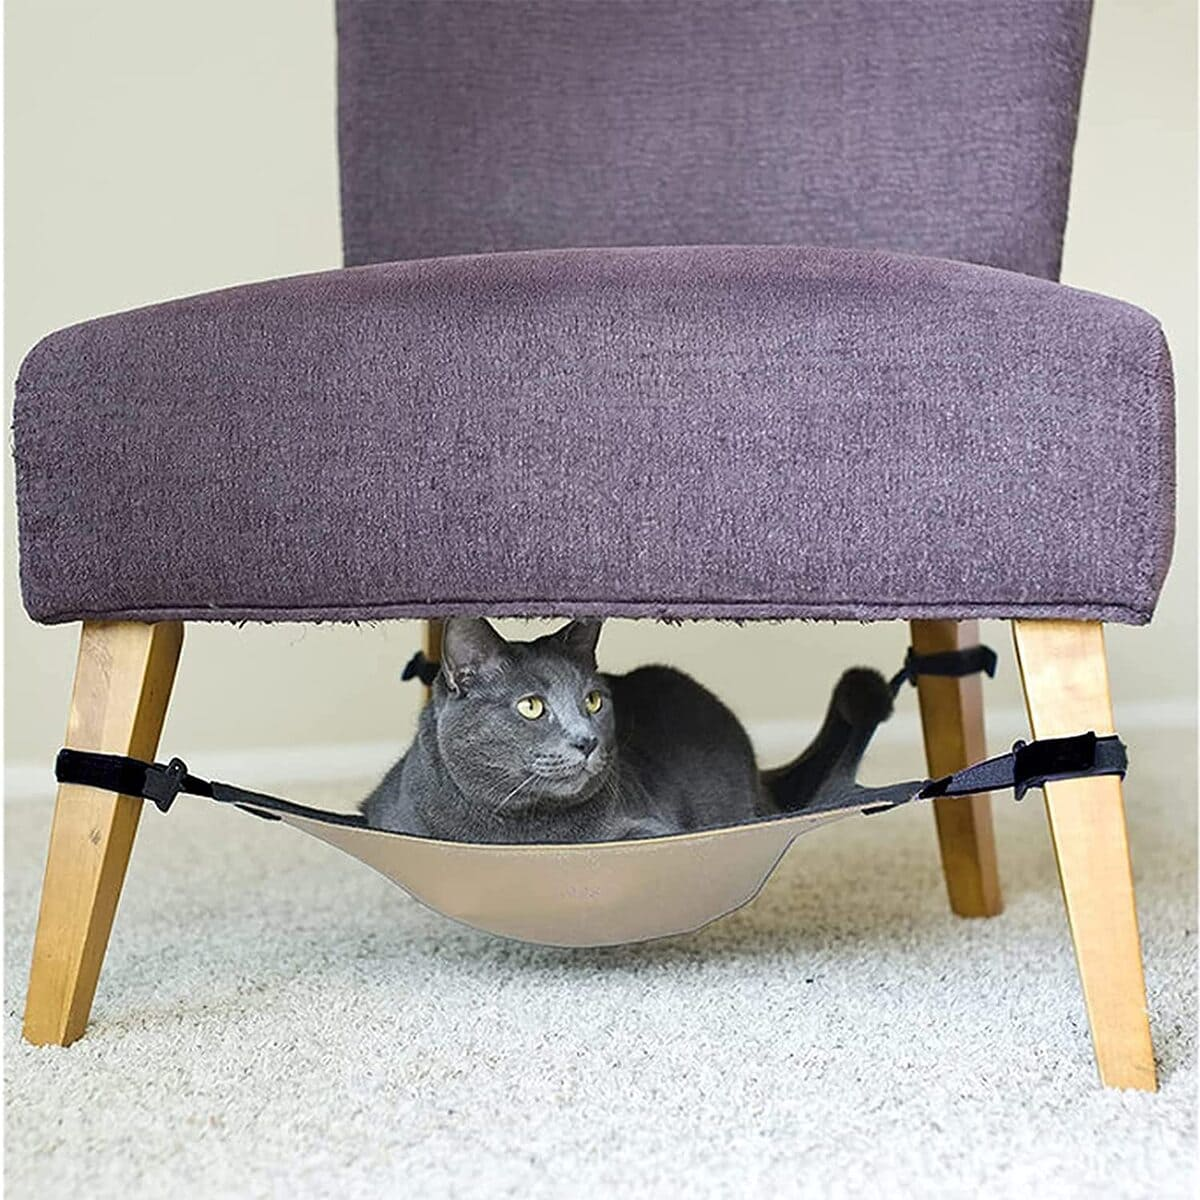 pet furniture 5 - 18 amazing pet furniture ideas that are perfect solutions for small spaces